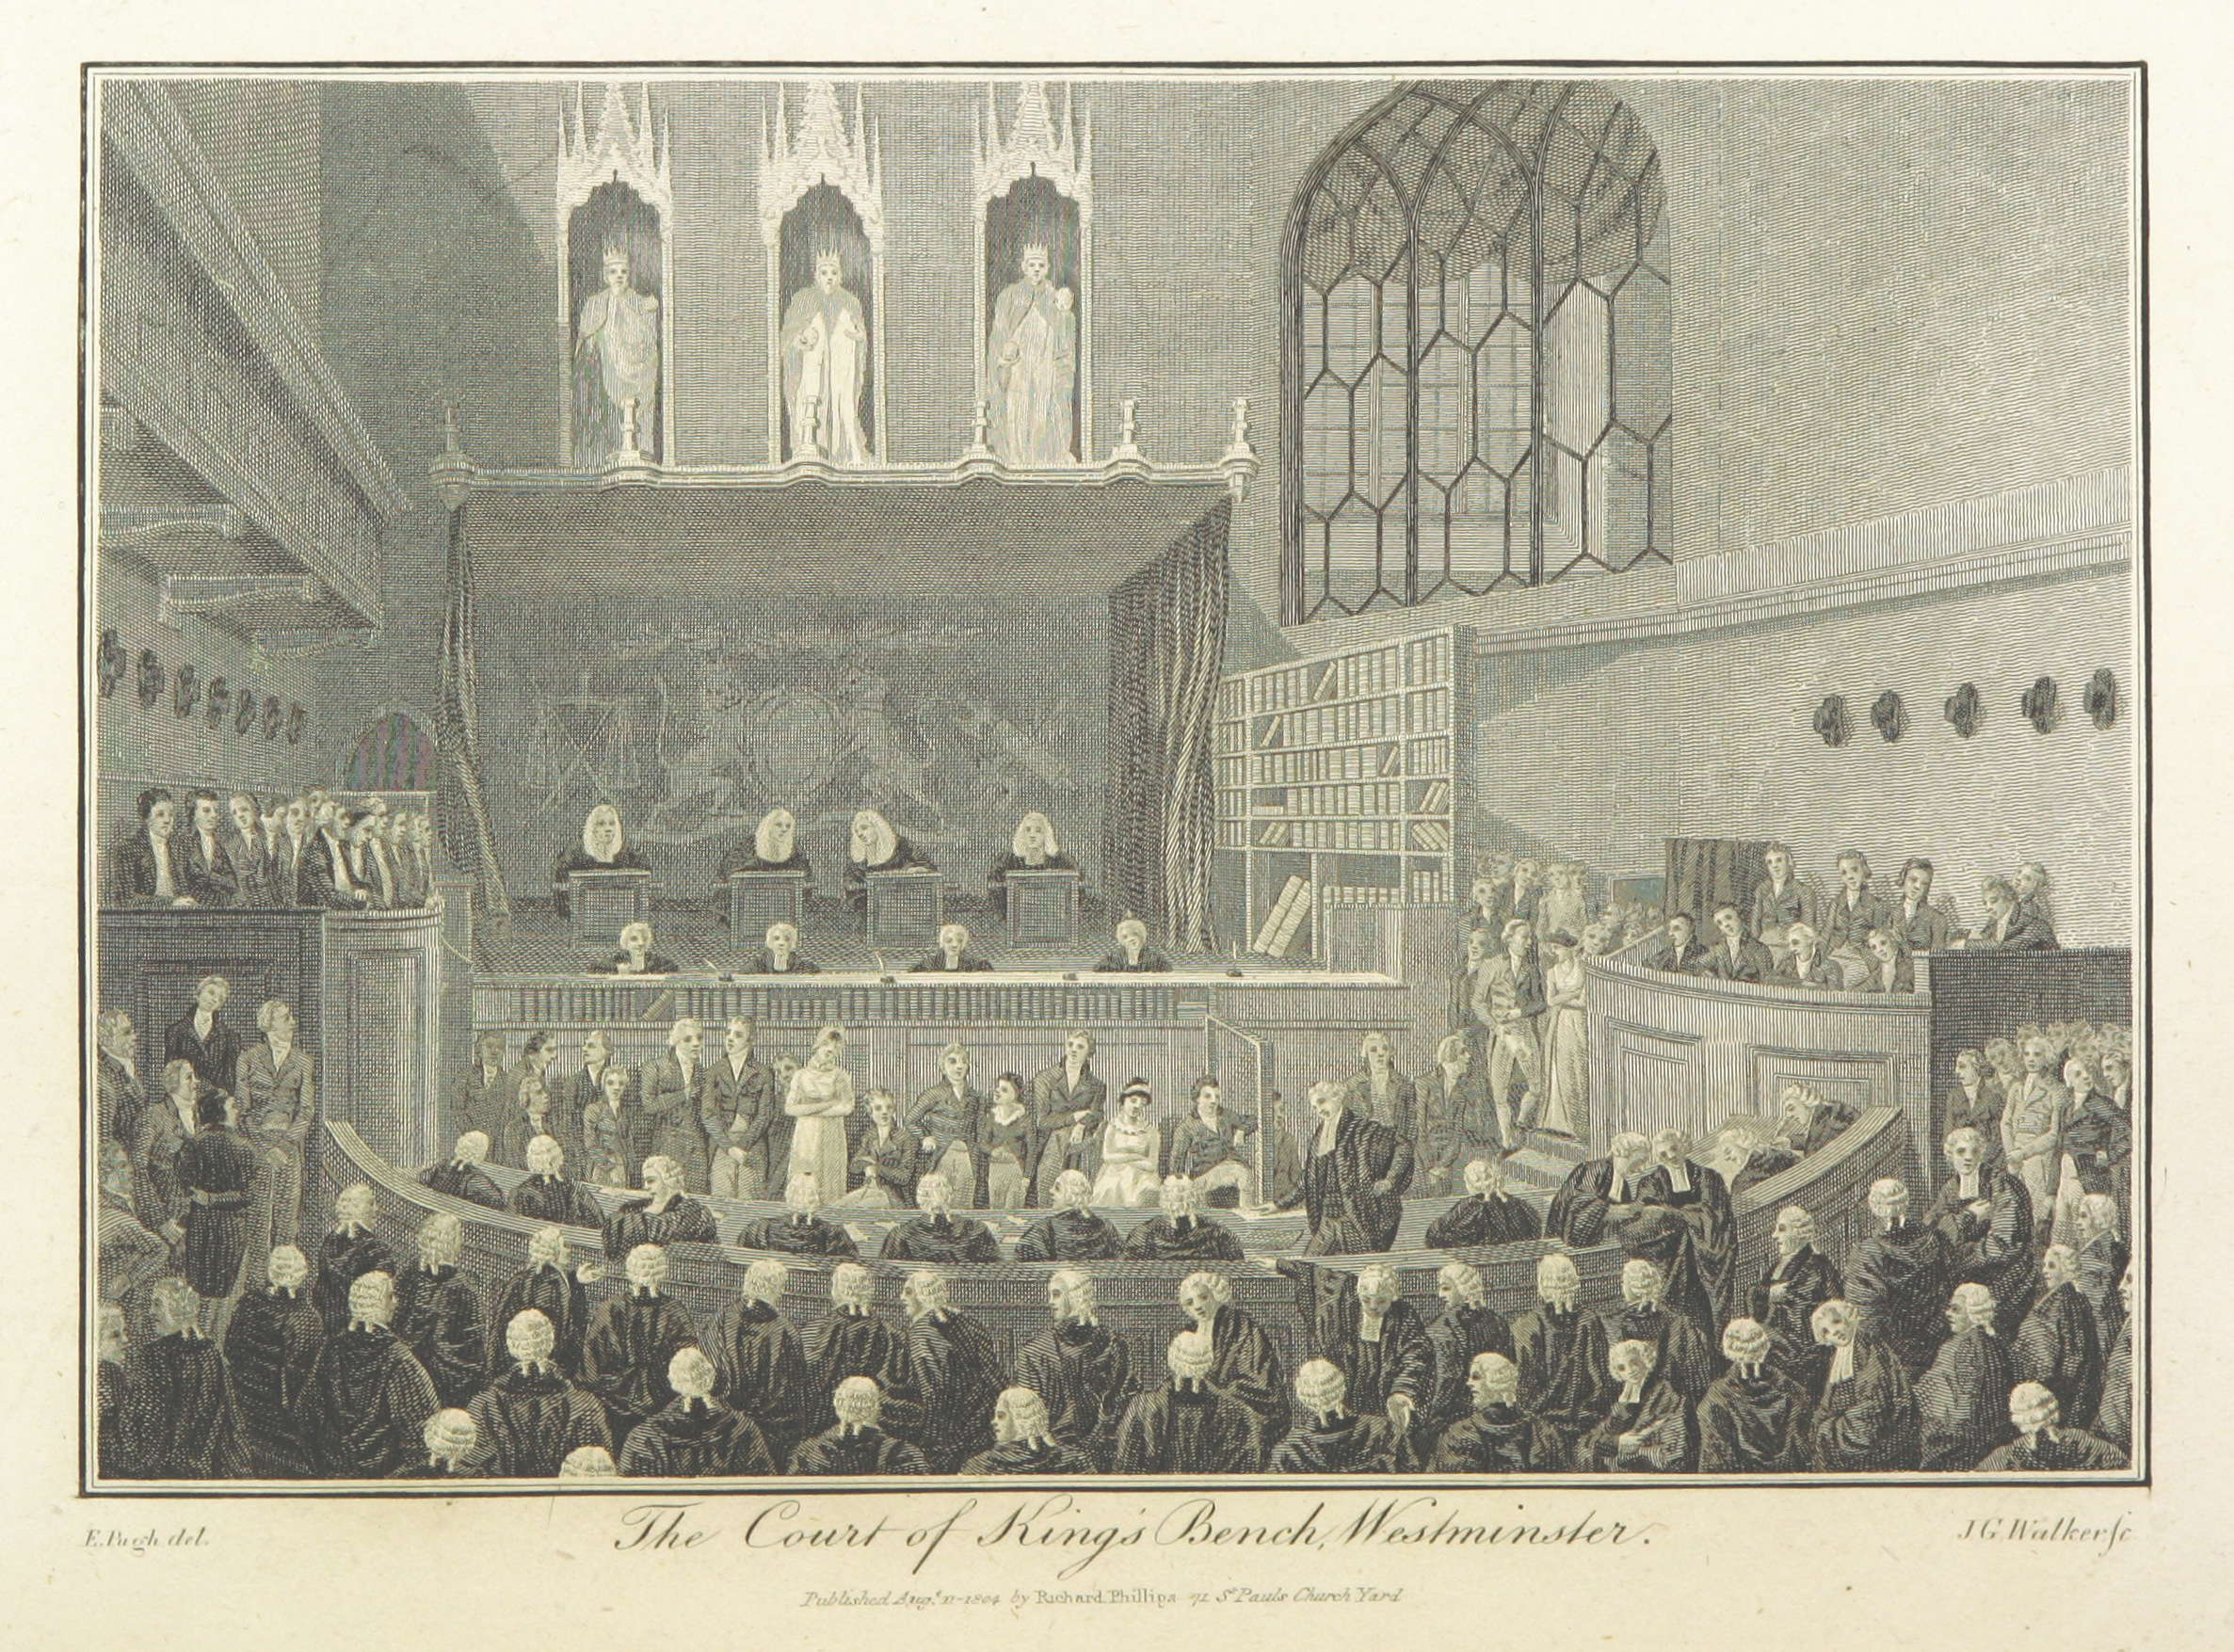 Phillips(1804)_p244_-_The_Court_of_Kings_Bench,_Westminster